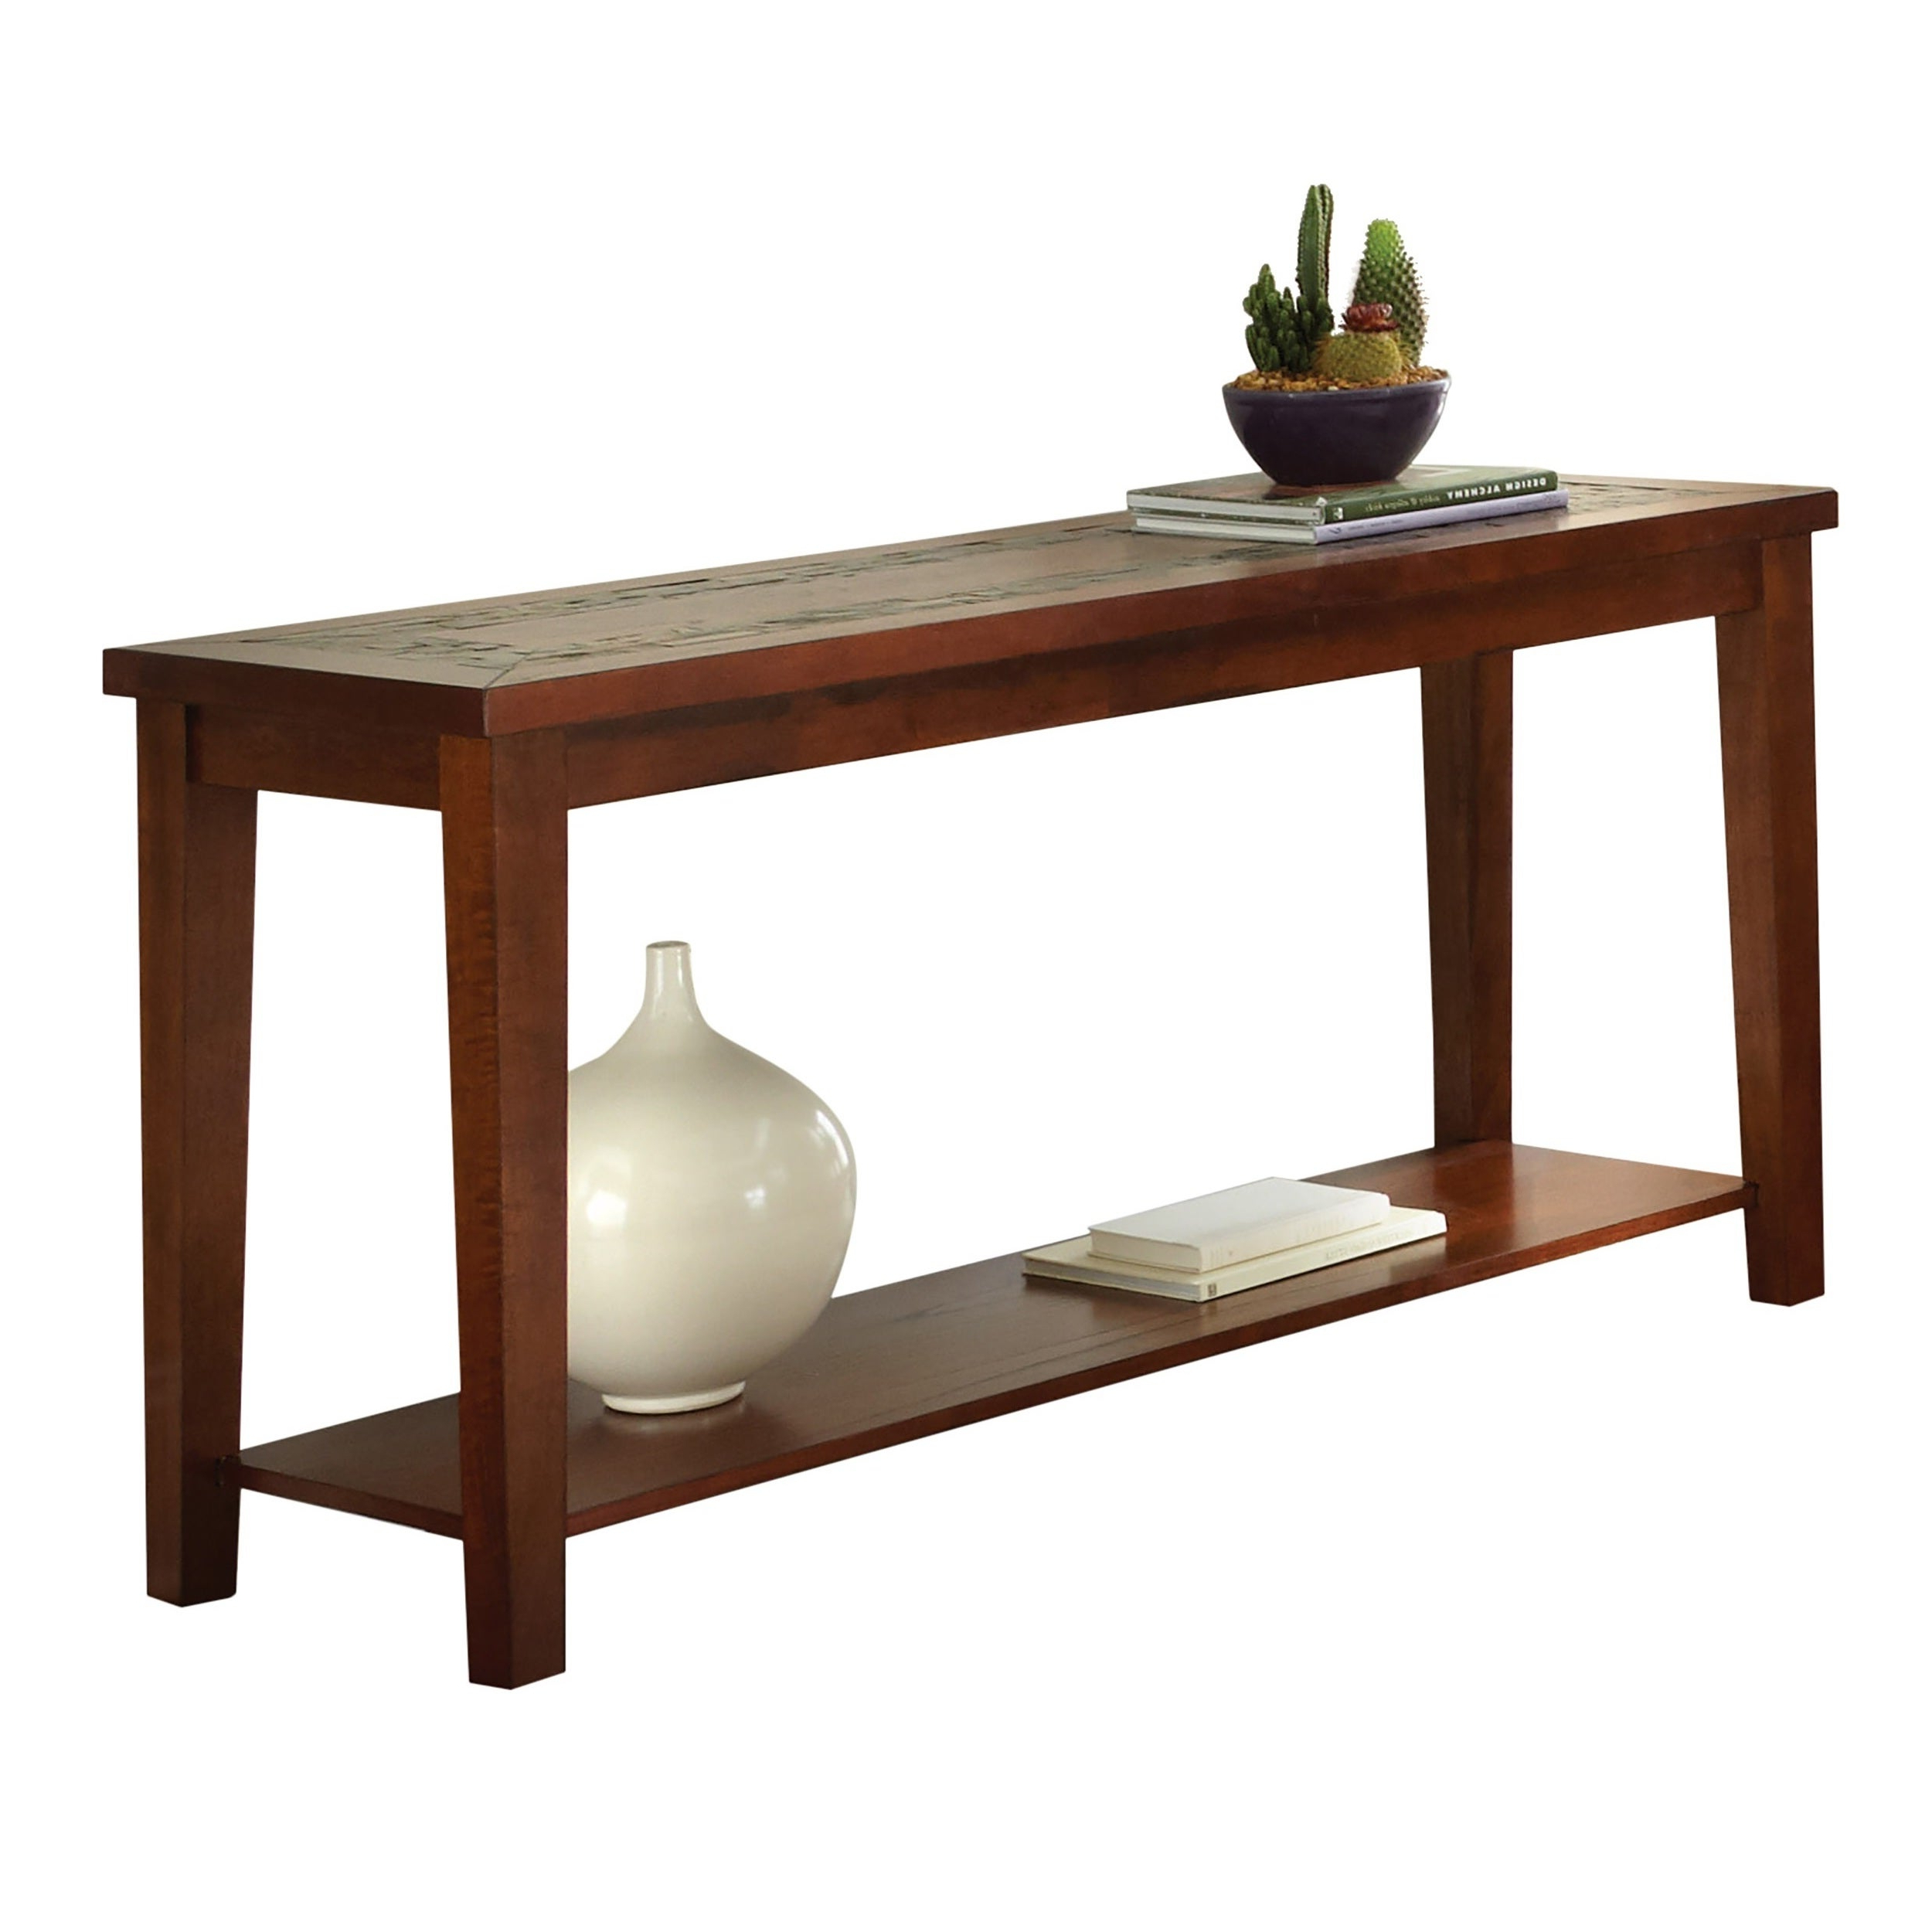 Greyson Living Plymouth Sofa Table In Most Up To Date Copper Grove Ixia Rustic Oak And Slate Tile Coffee Tables (View 10 of 20)